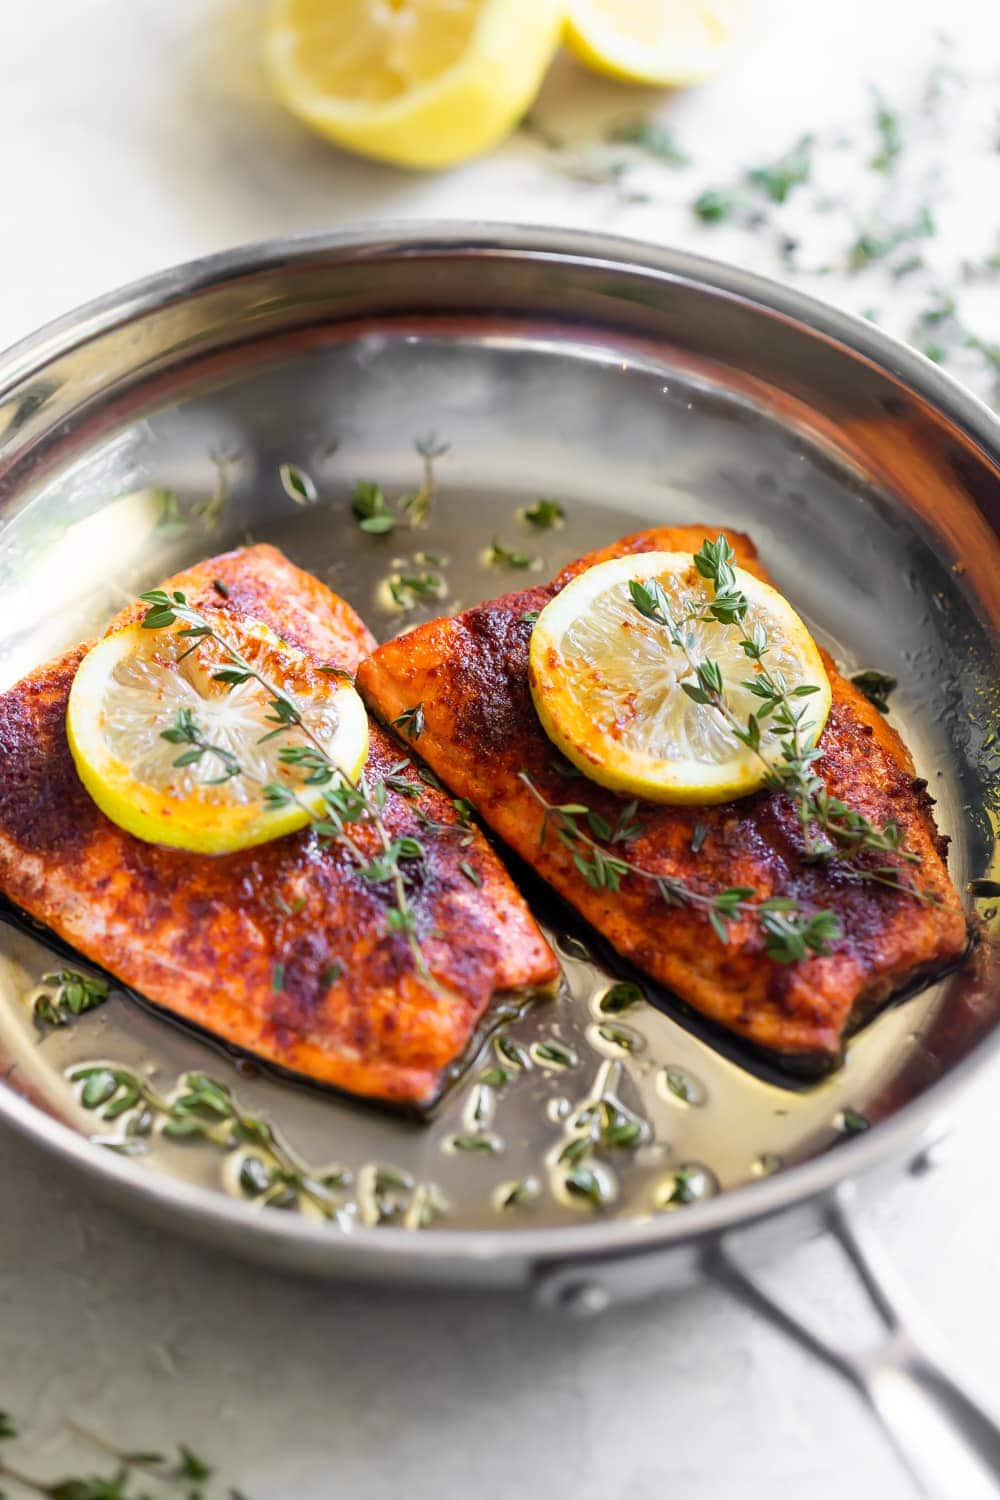 Spicy Salmon with Honey Butter Sauce - A Sassy Spoon